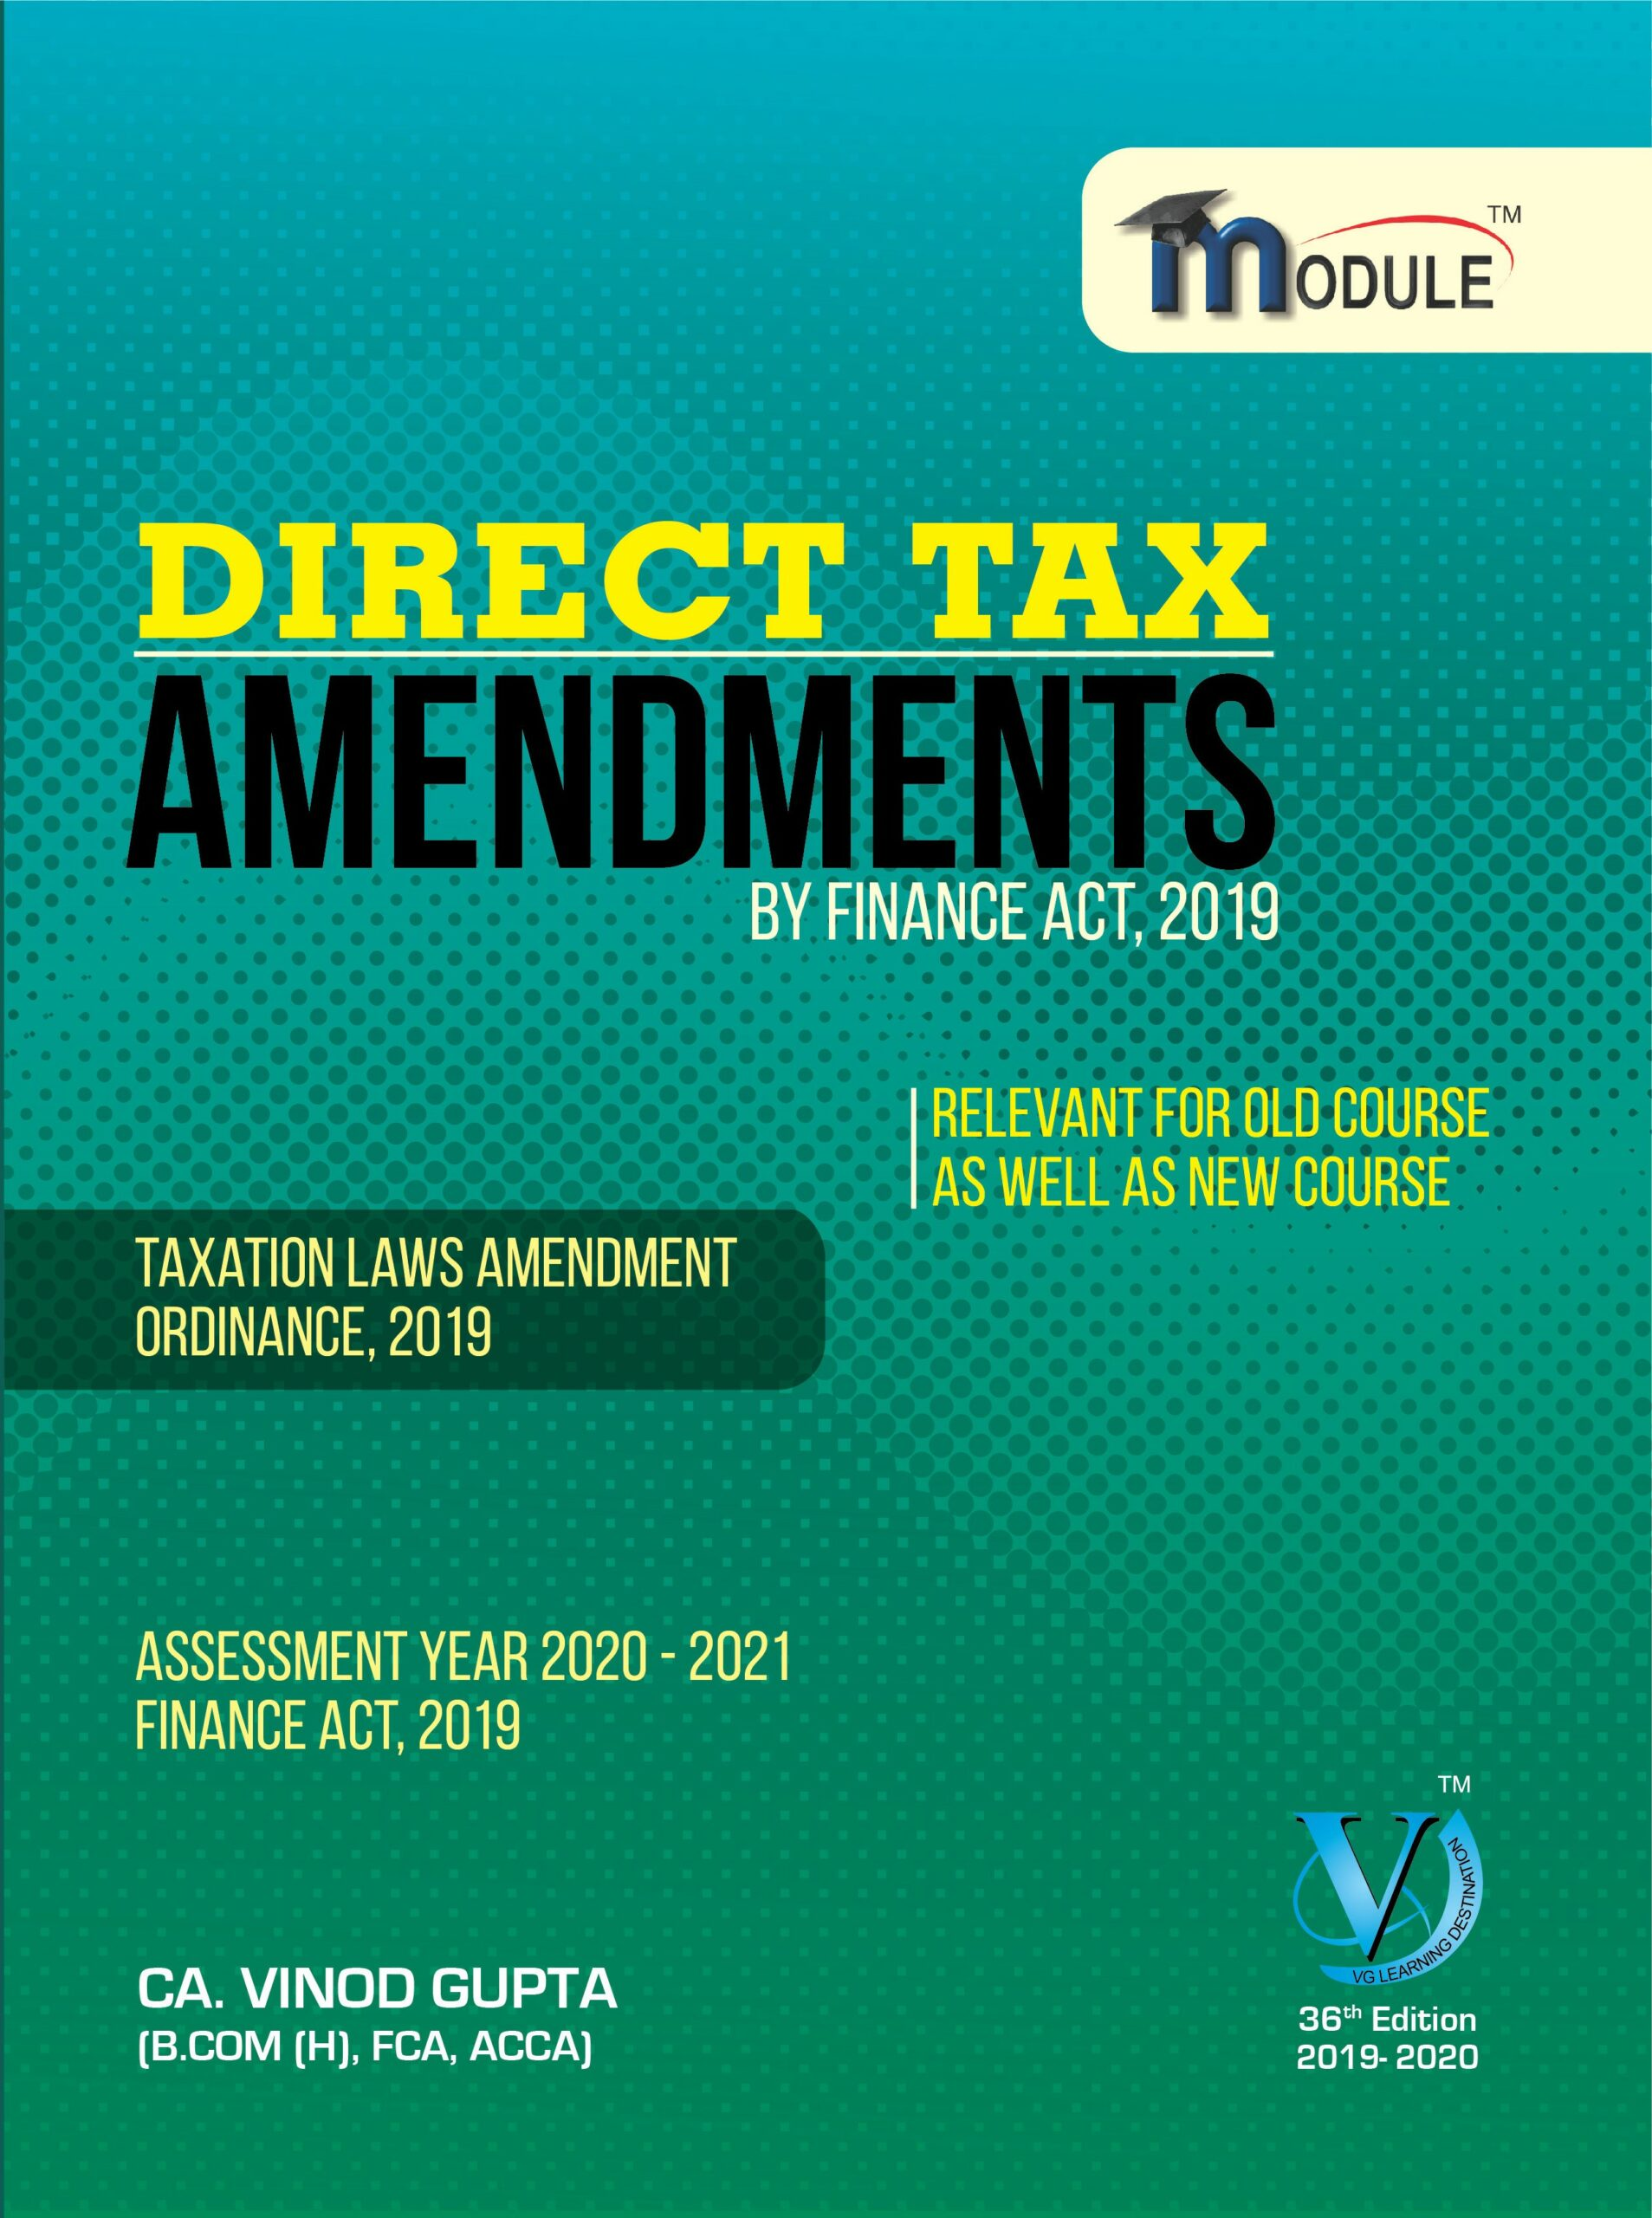 VG Learning Destination DIRECT TAX – AMENDMENT Module for CA Final by Vinod Gupta Applicable for May 2020 Exam (VG Learning Destination Publishing) Edition 2020